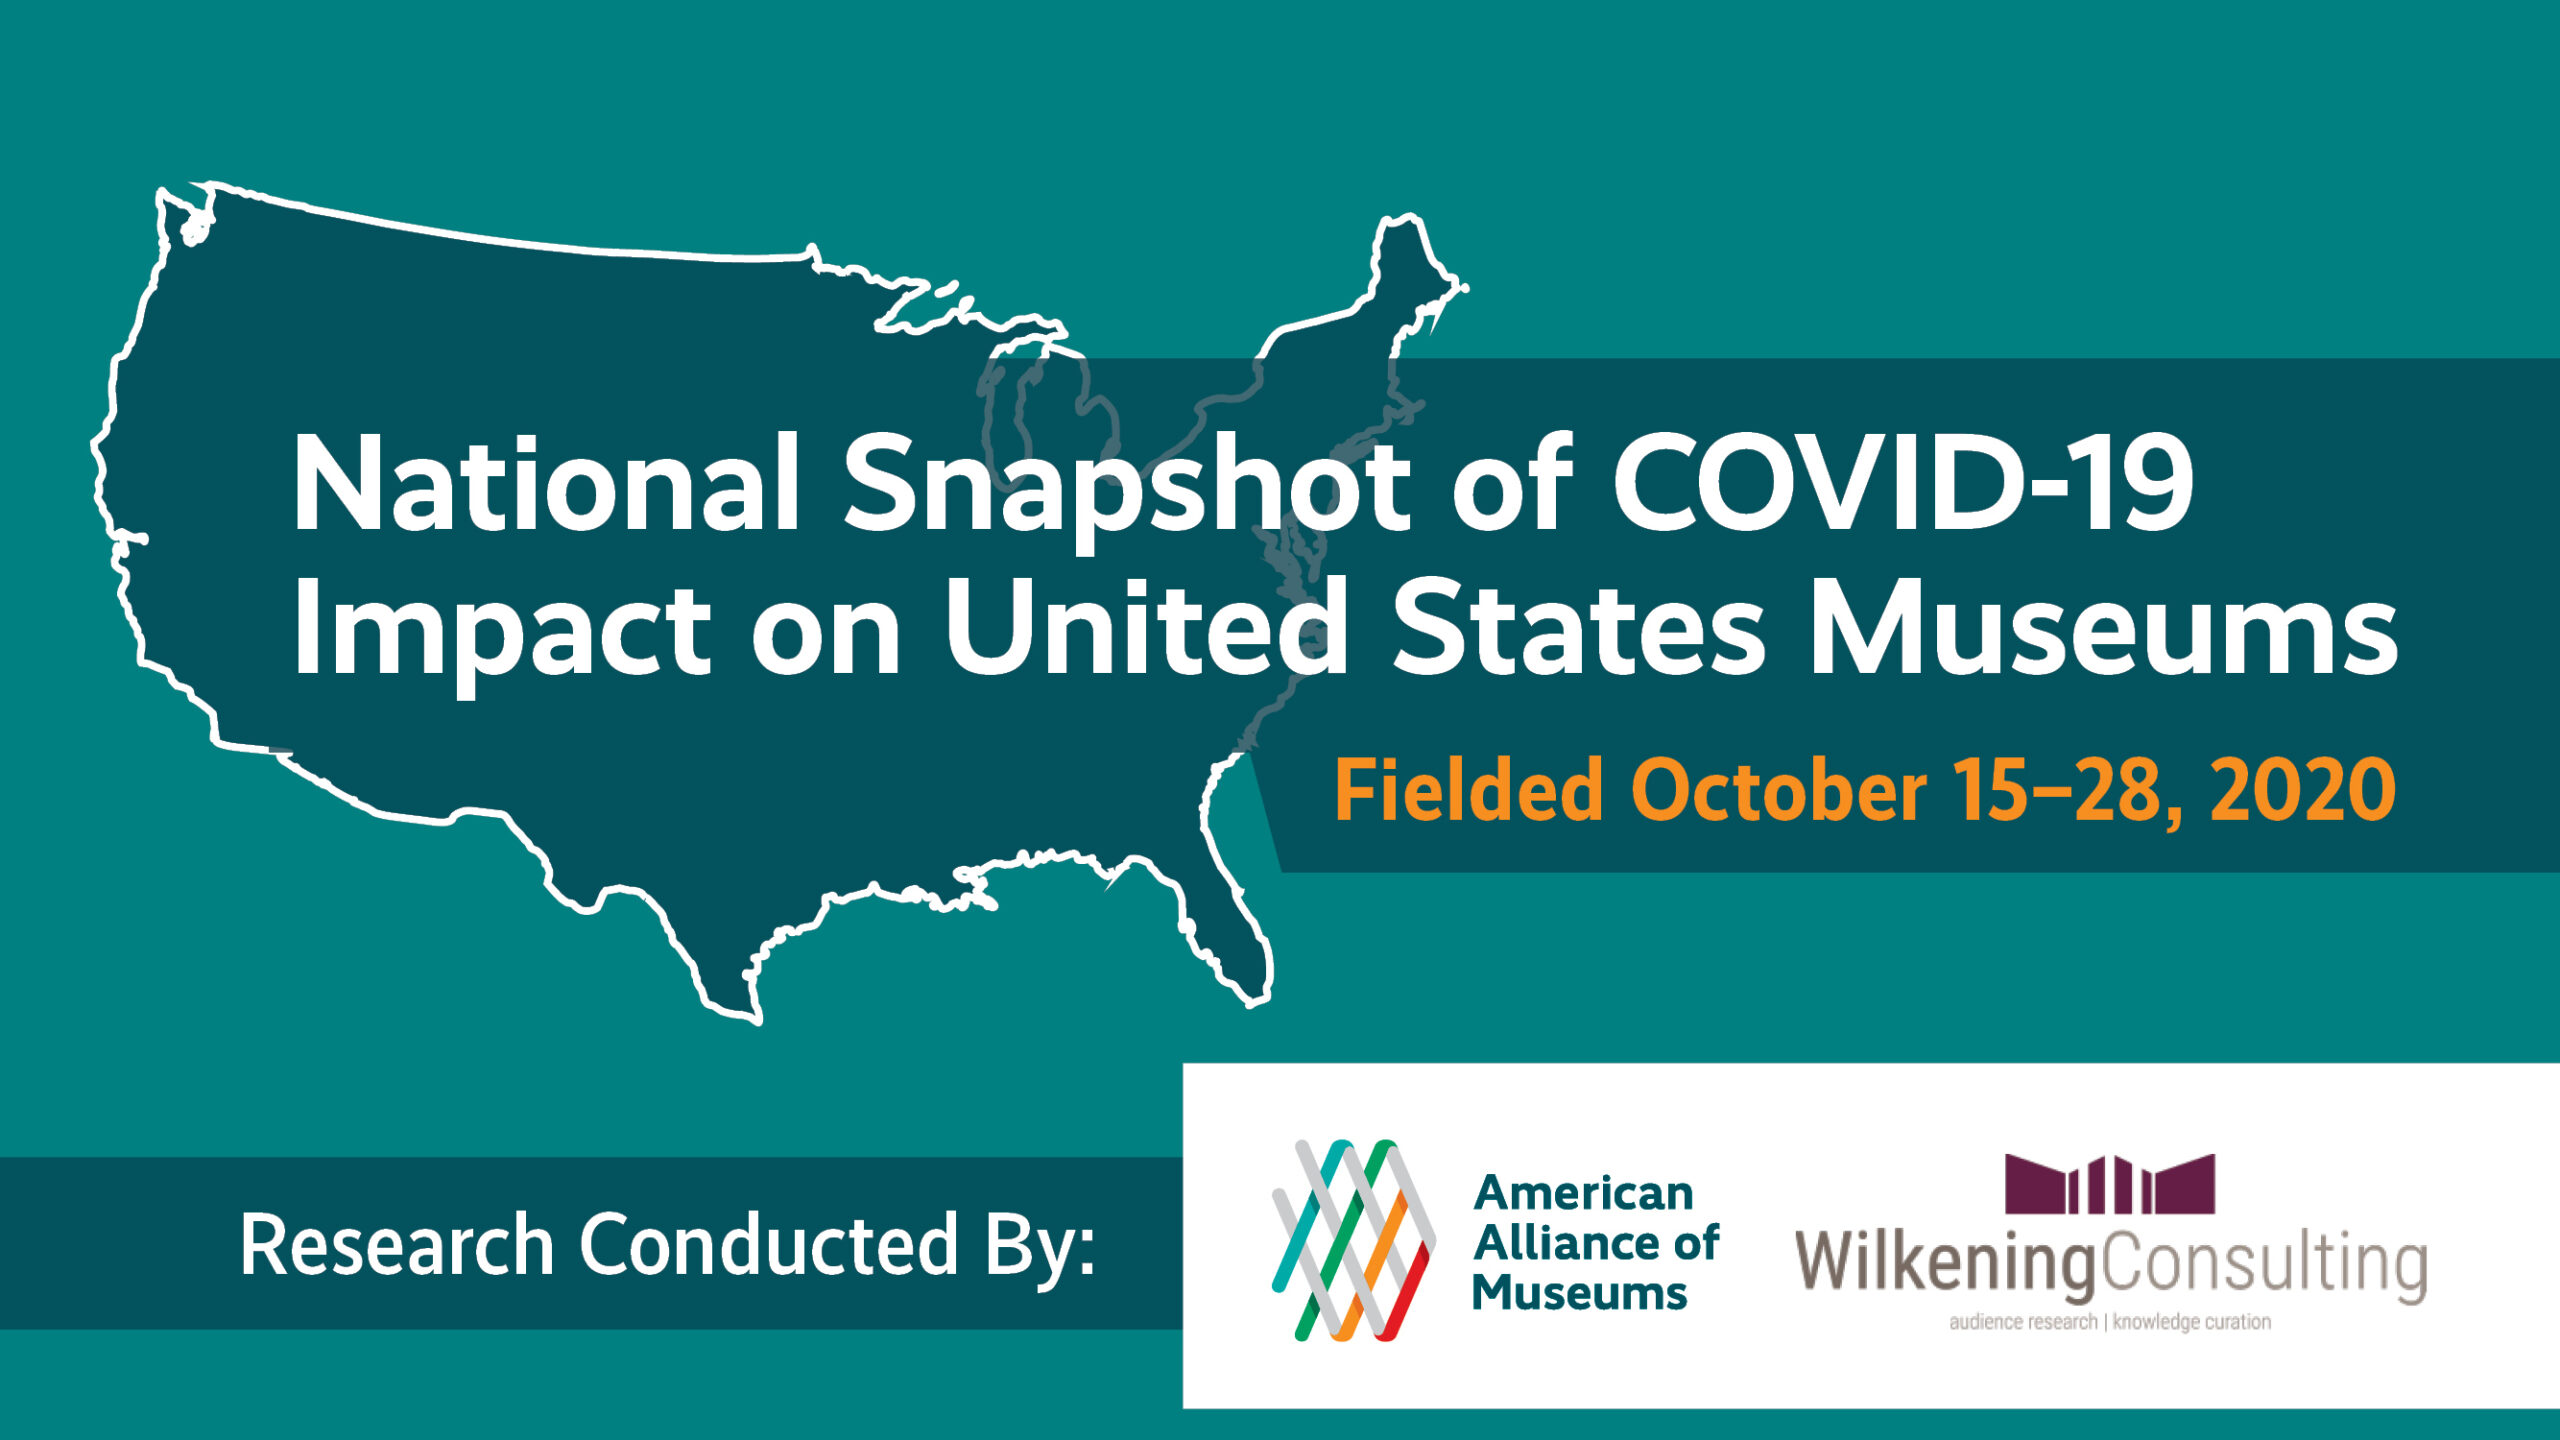 map of US with text overlay: National Snapshot of COVID-19 Impact on United States Museums